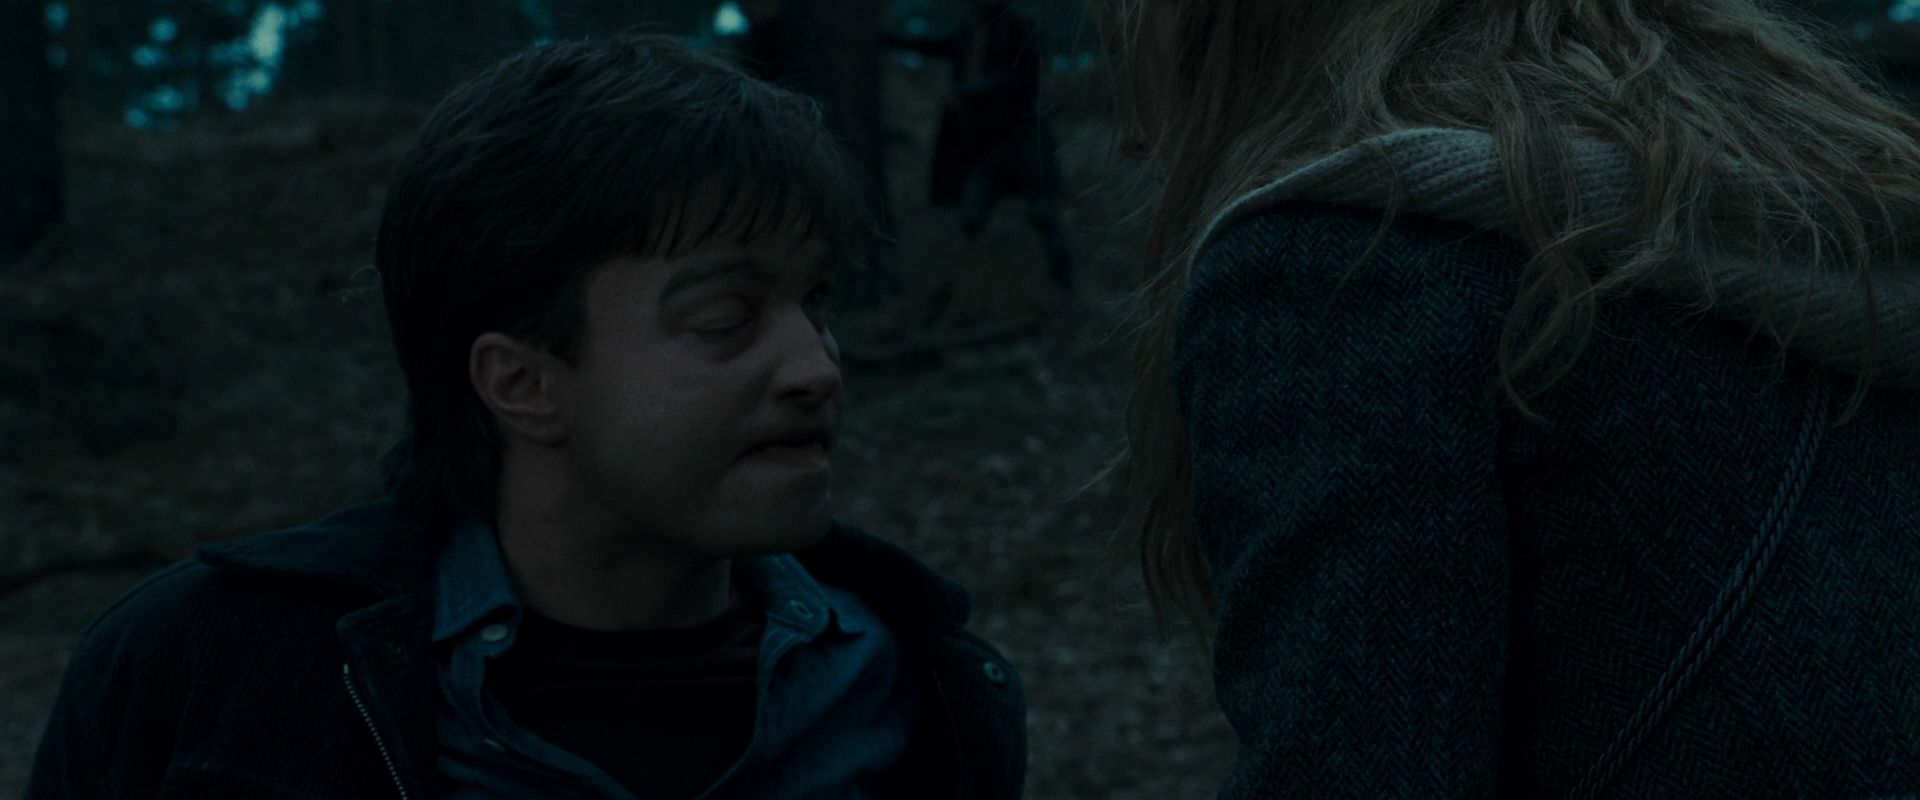 Emma Watson In Harry Potter And The Deathly Hallows Part 2